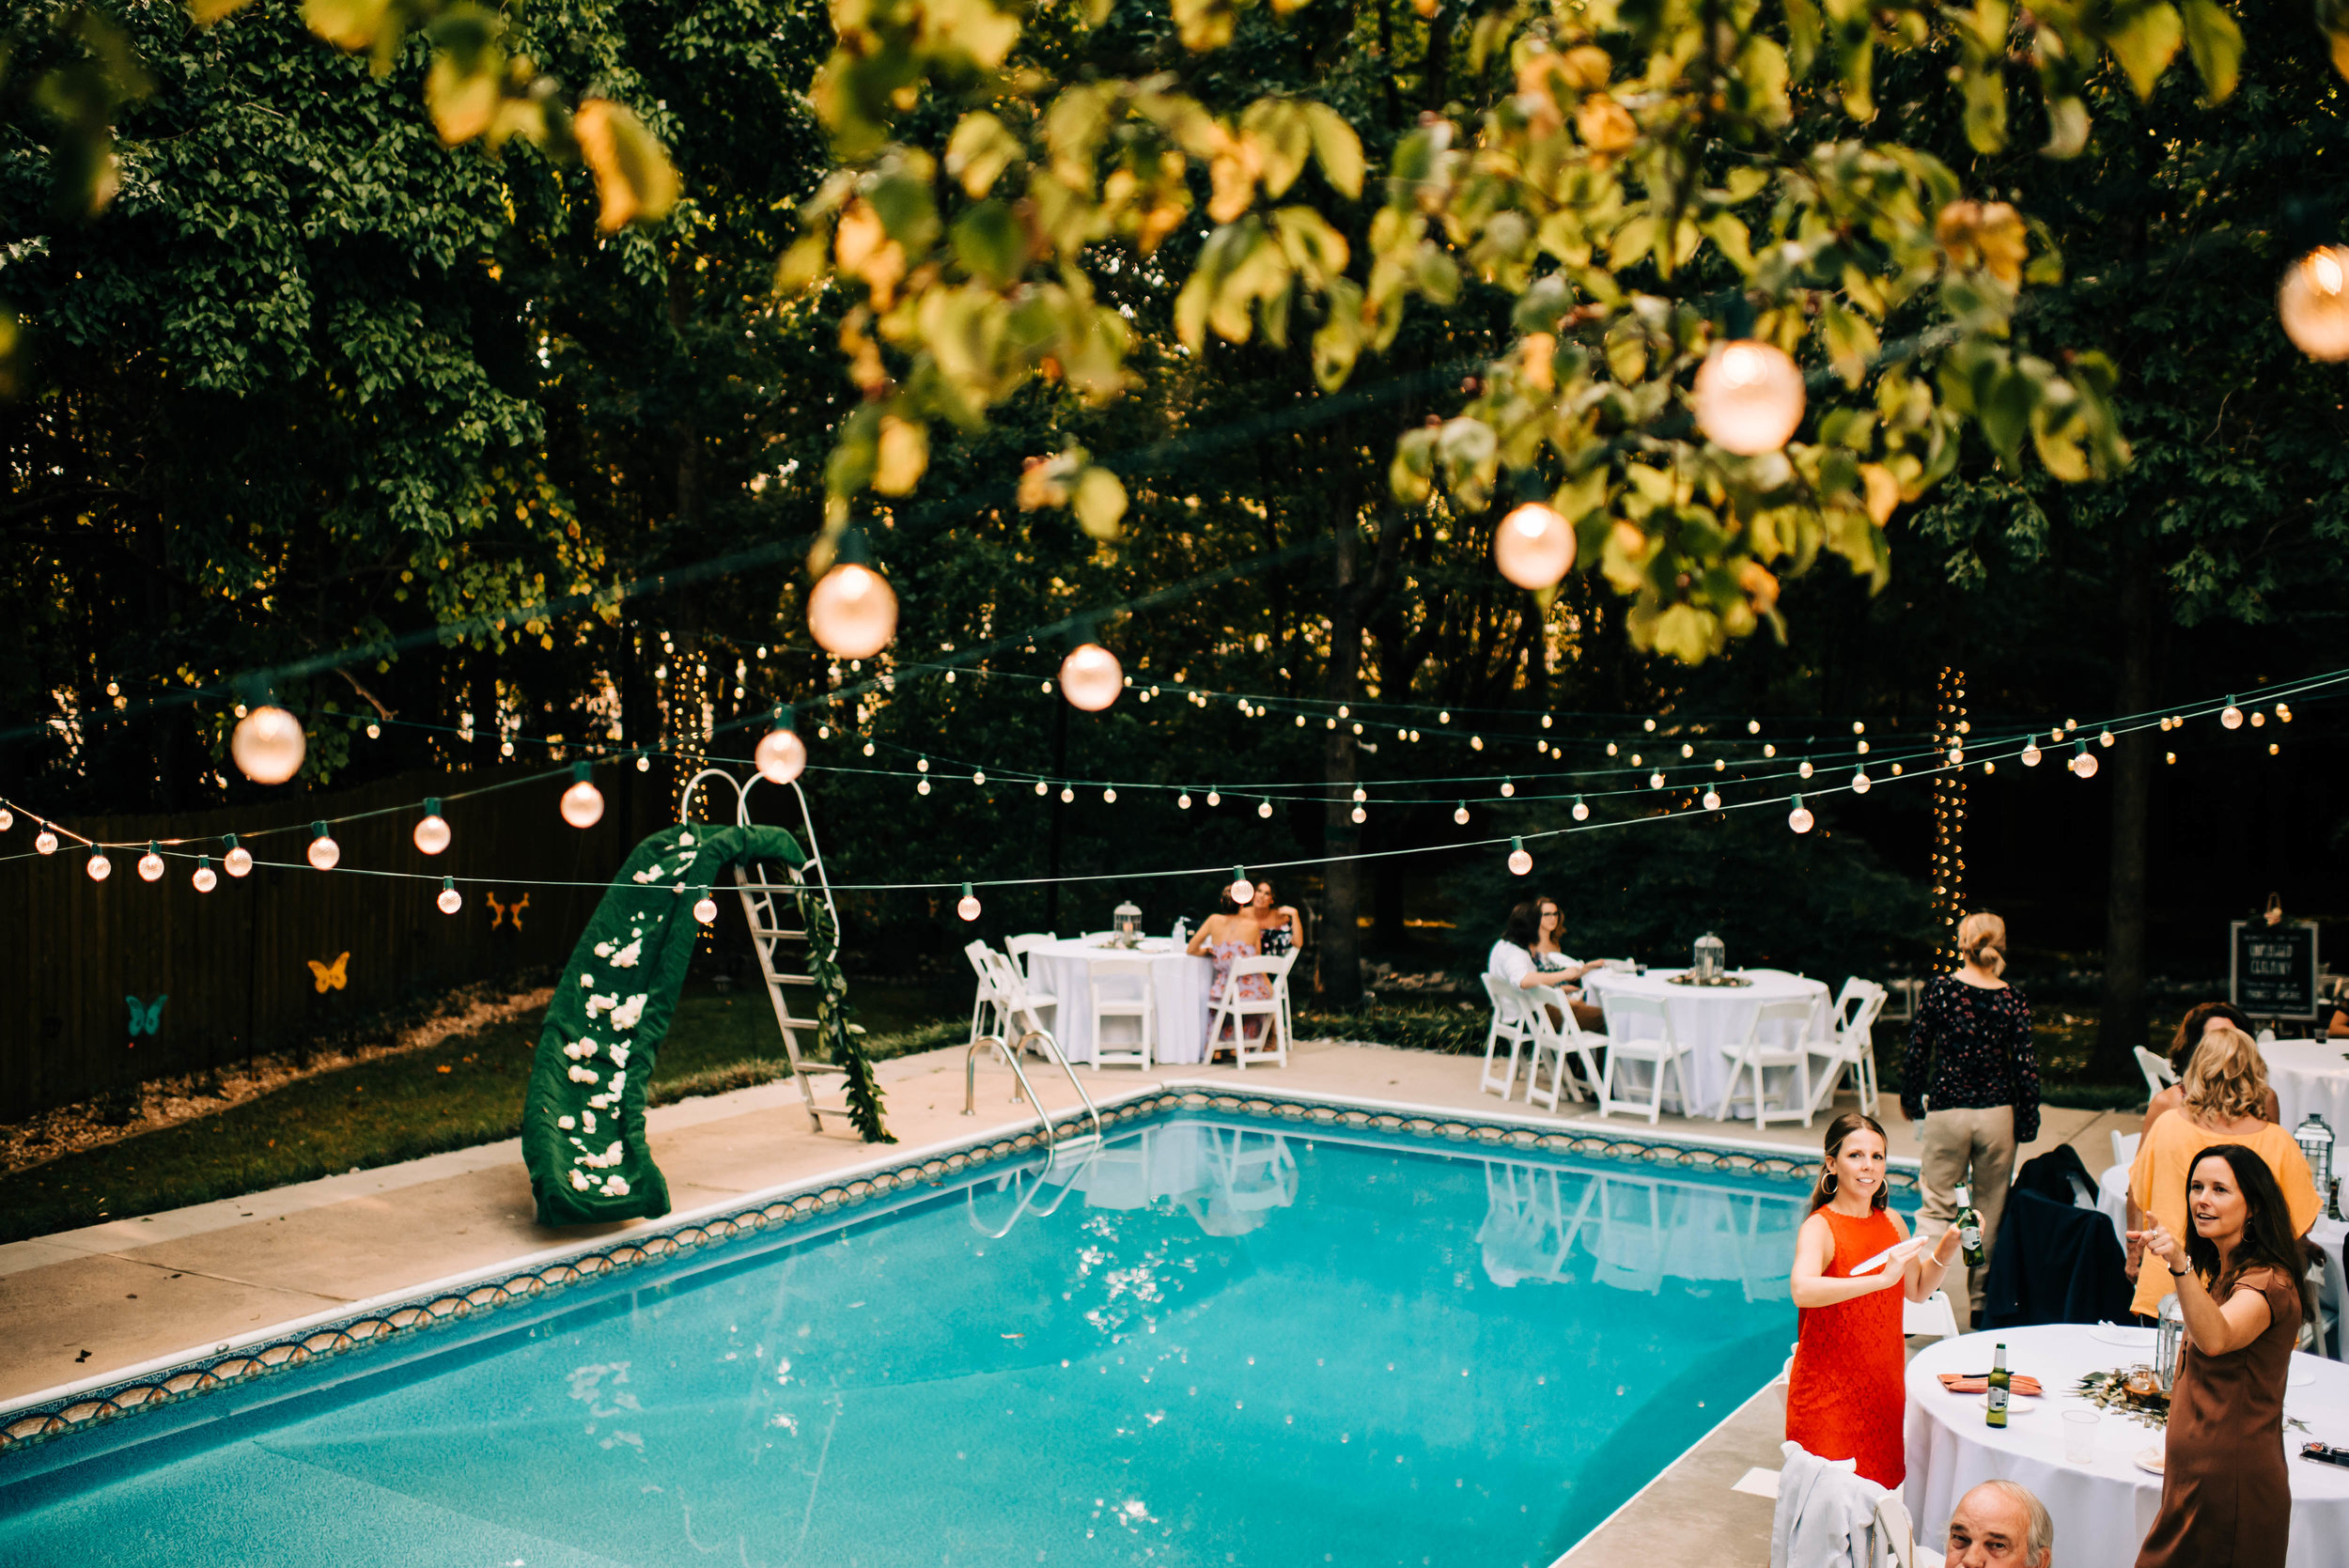 atlanta backyard wedding bay area oakland san francisco engagement wedding nontraditional fun creative eclectic photographer magic-892.jpg